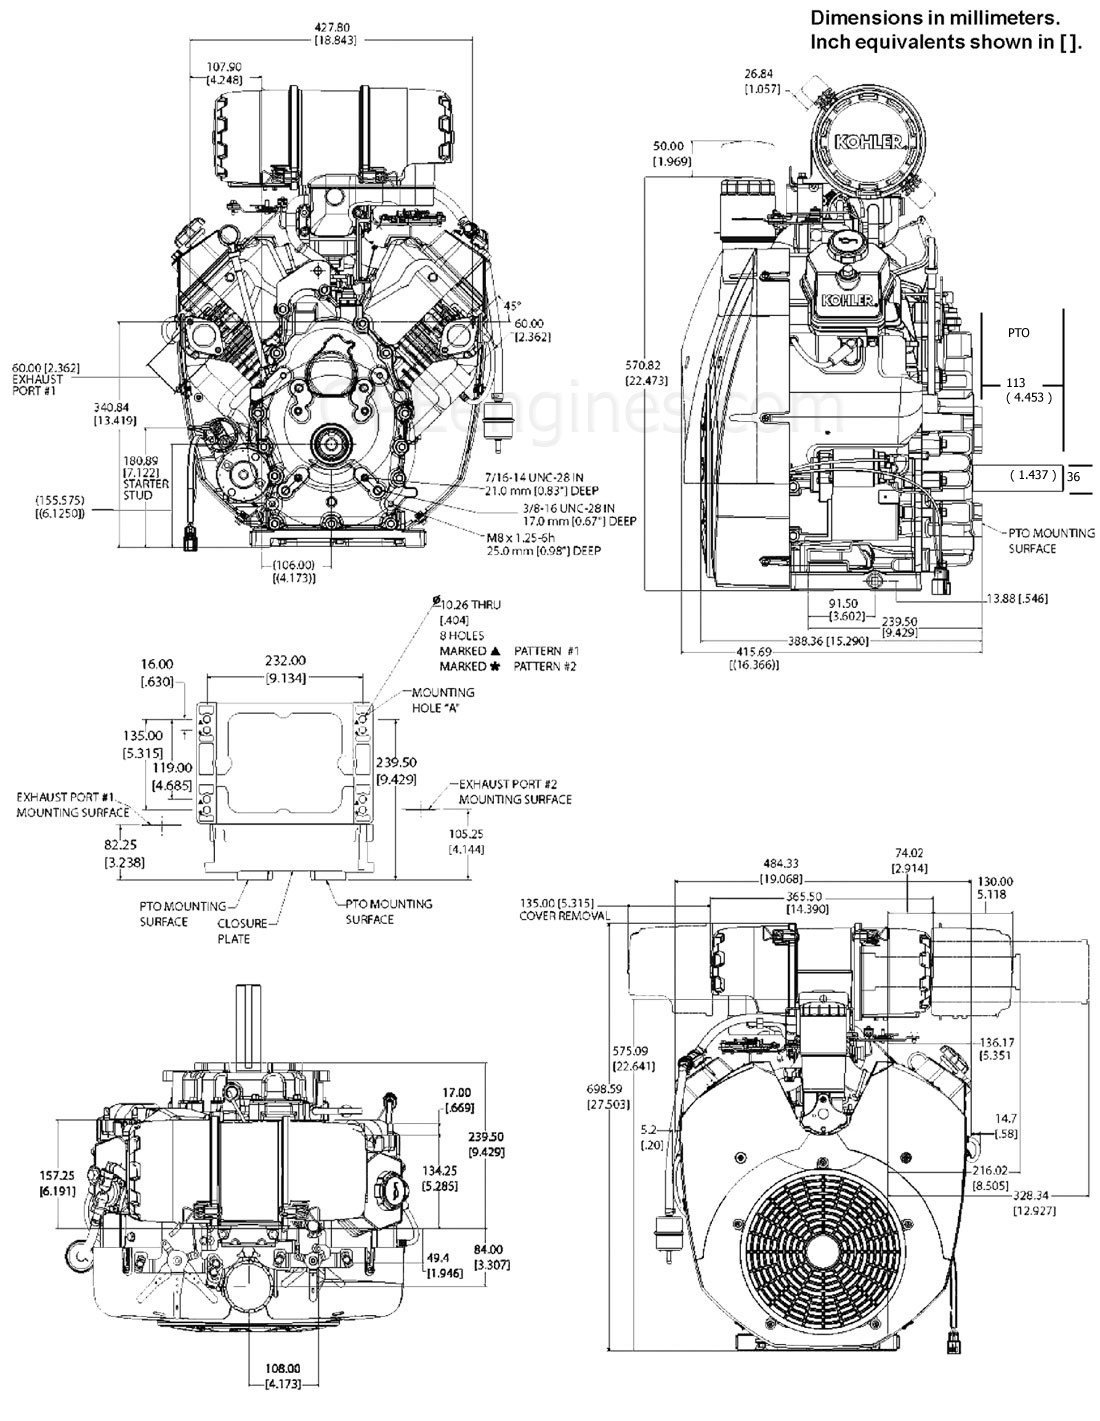 CH980_drawings ch940 ch960 ch980 ch1000 drawings kohler engines and parts store  at pacquiaovsvargaslive.co